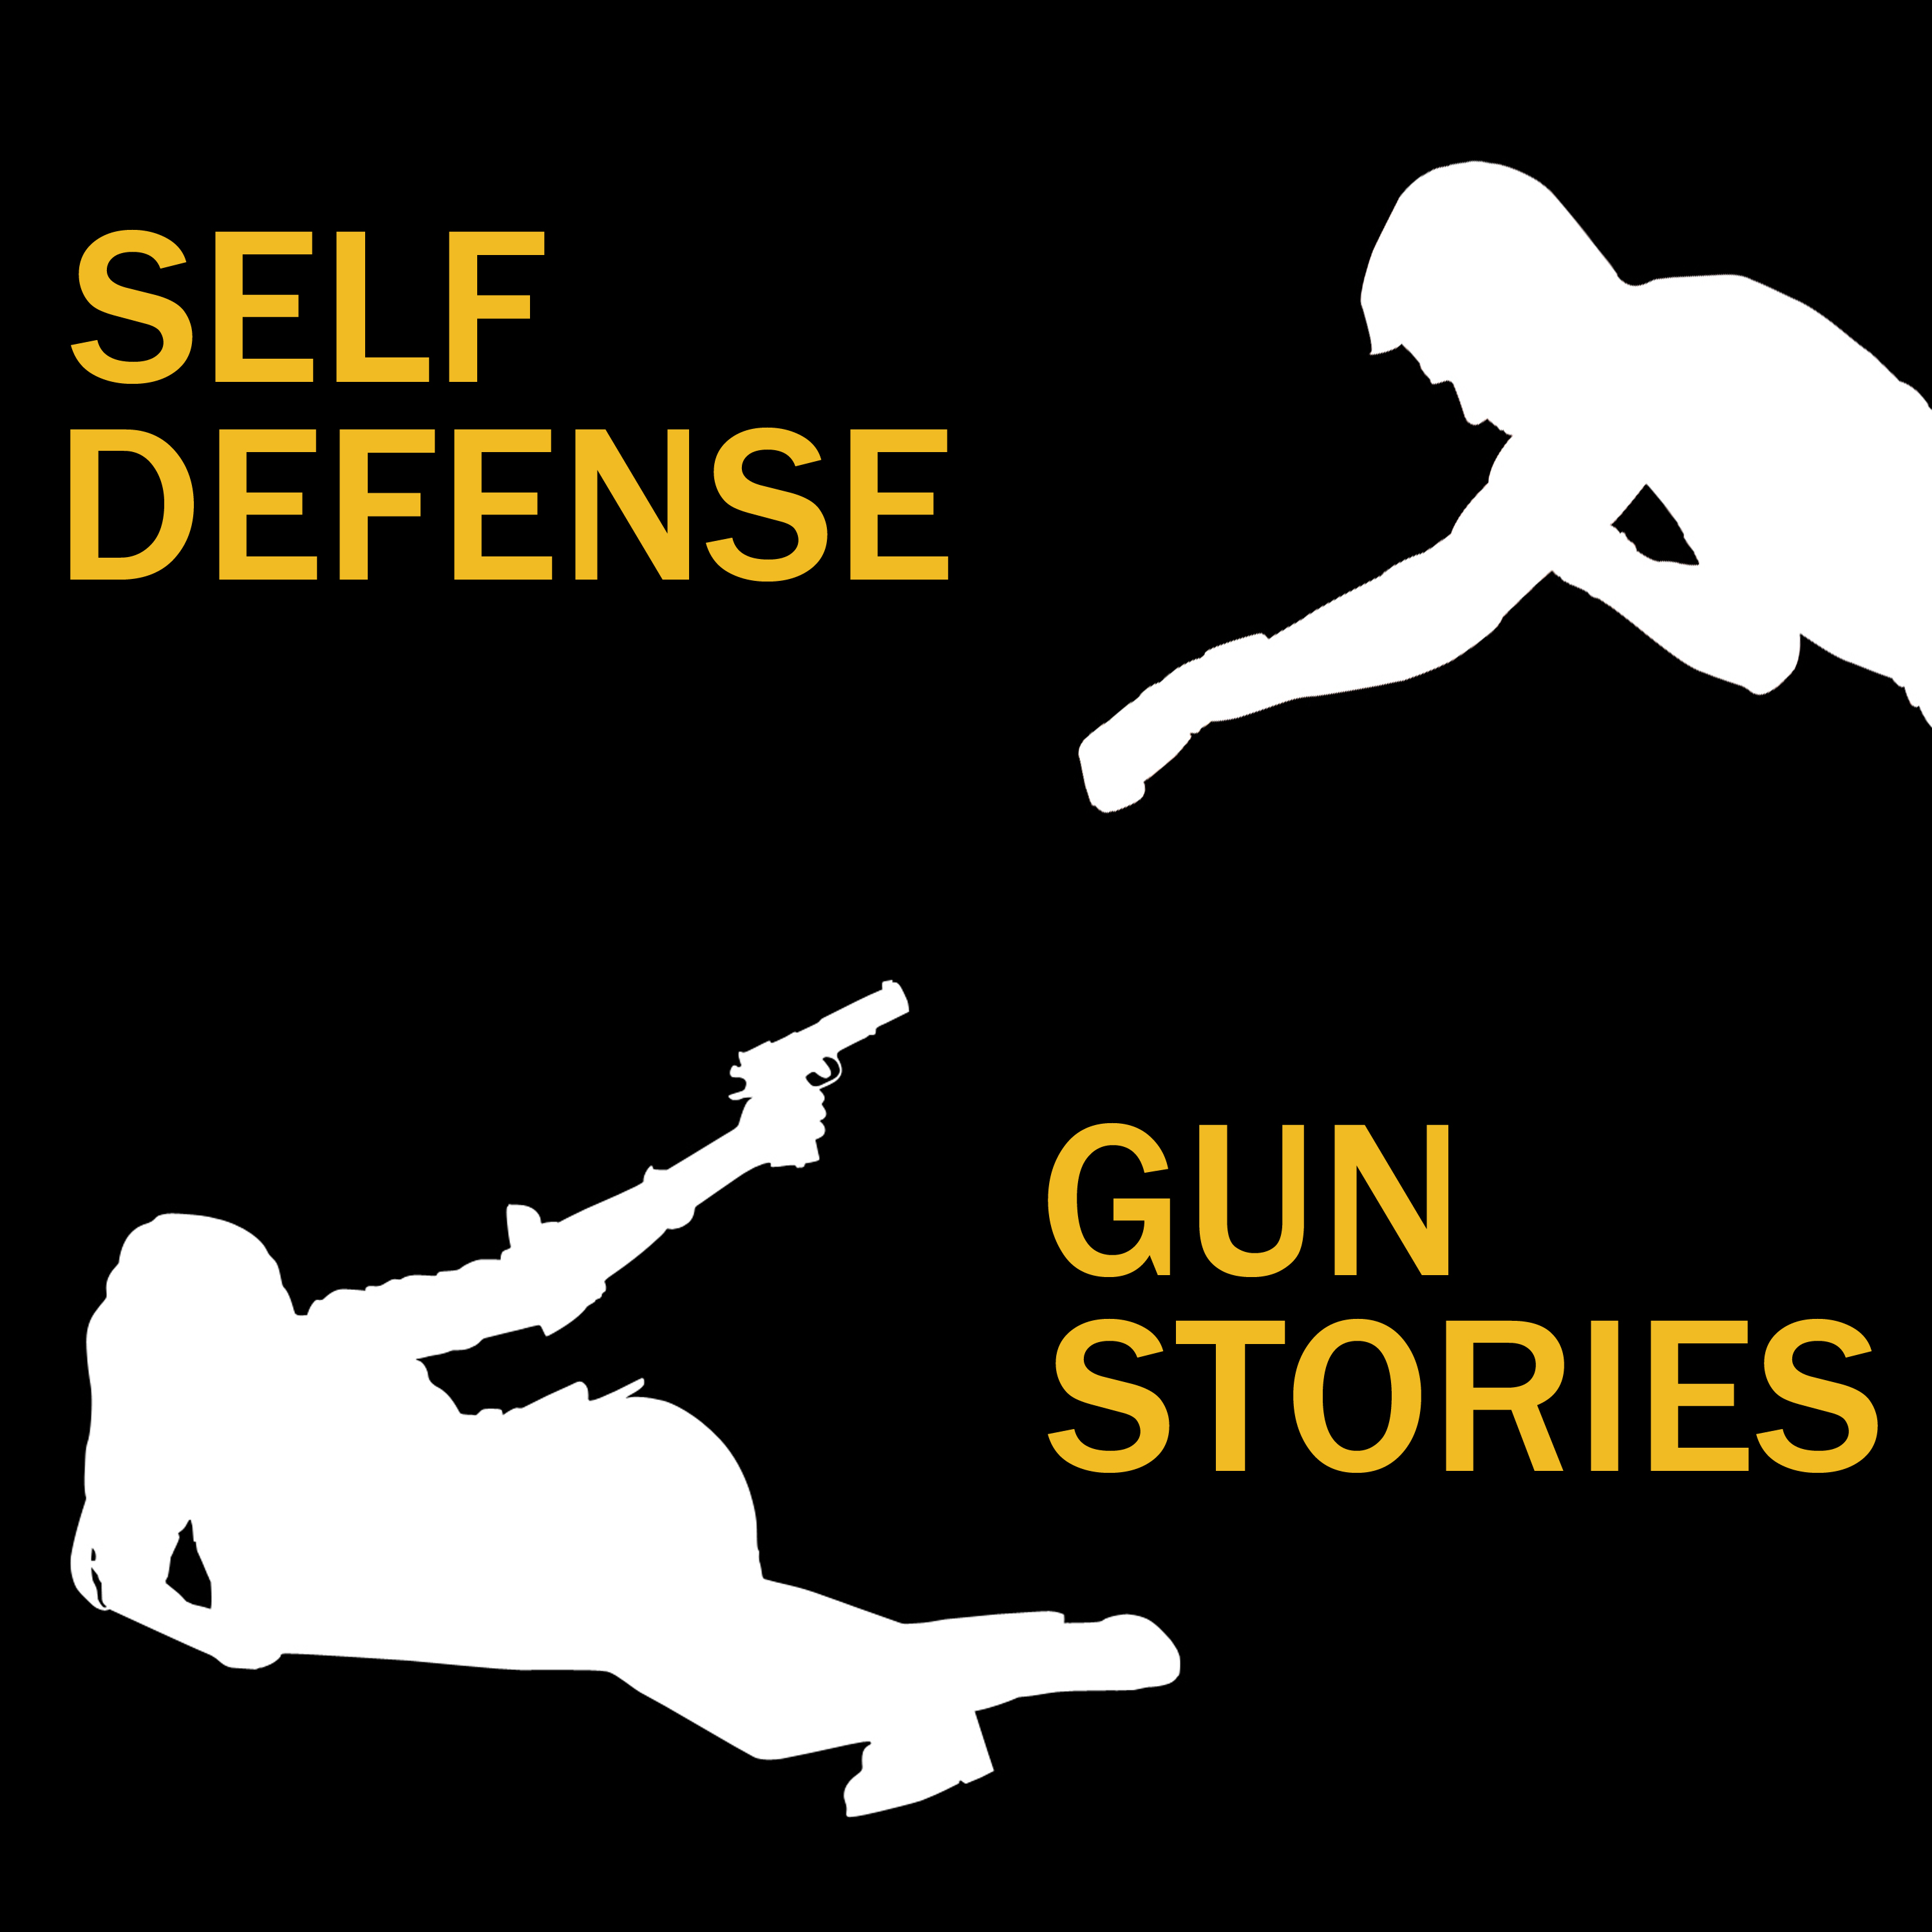 Self Defense Gun Stories